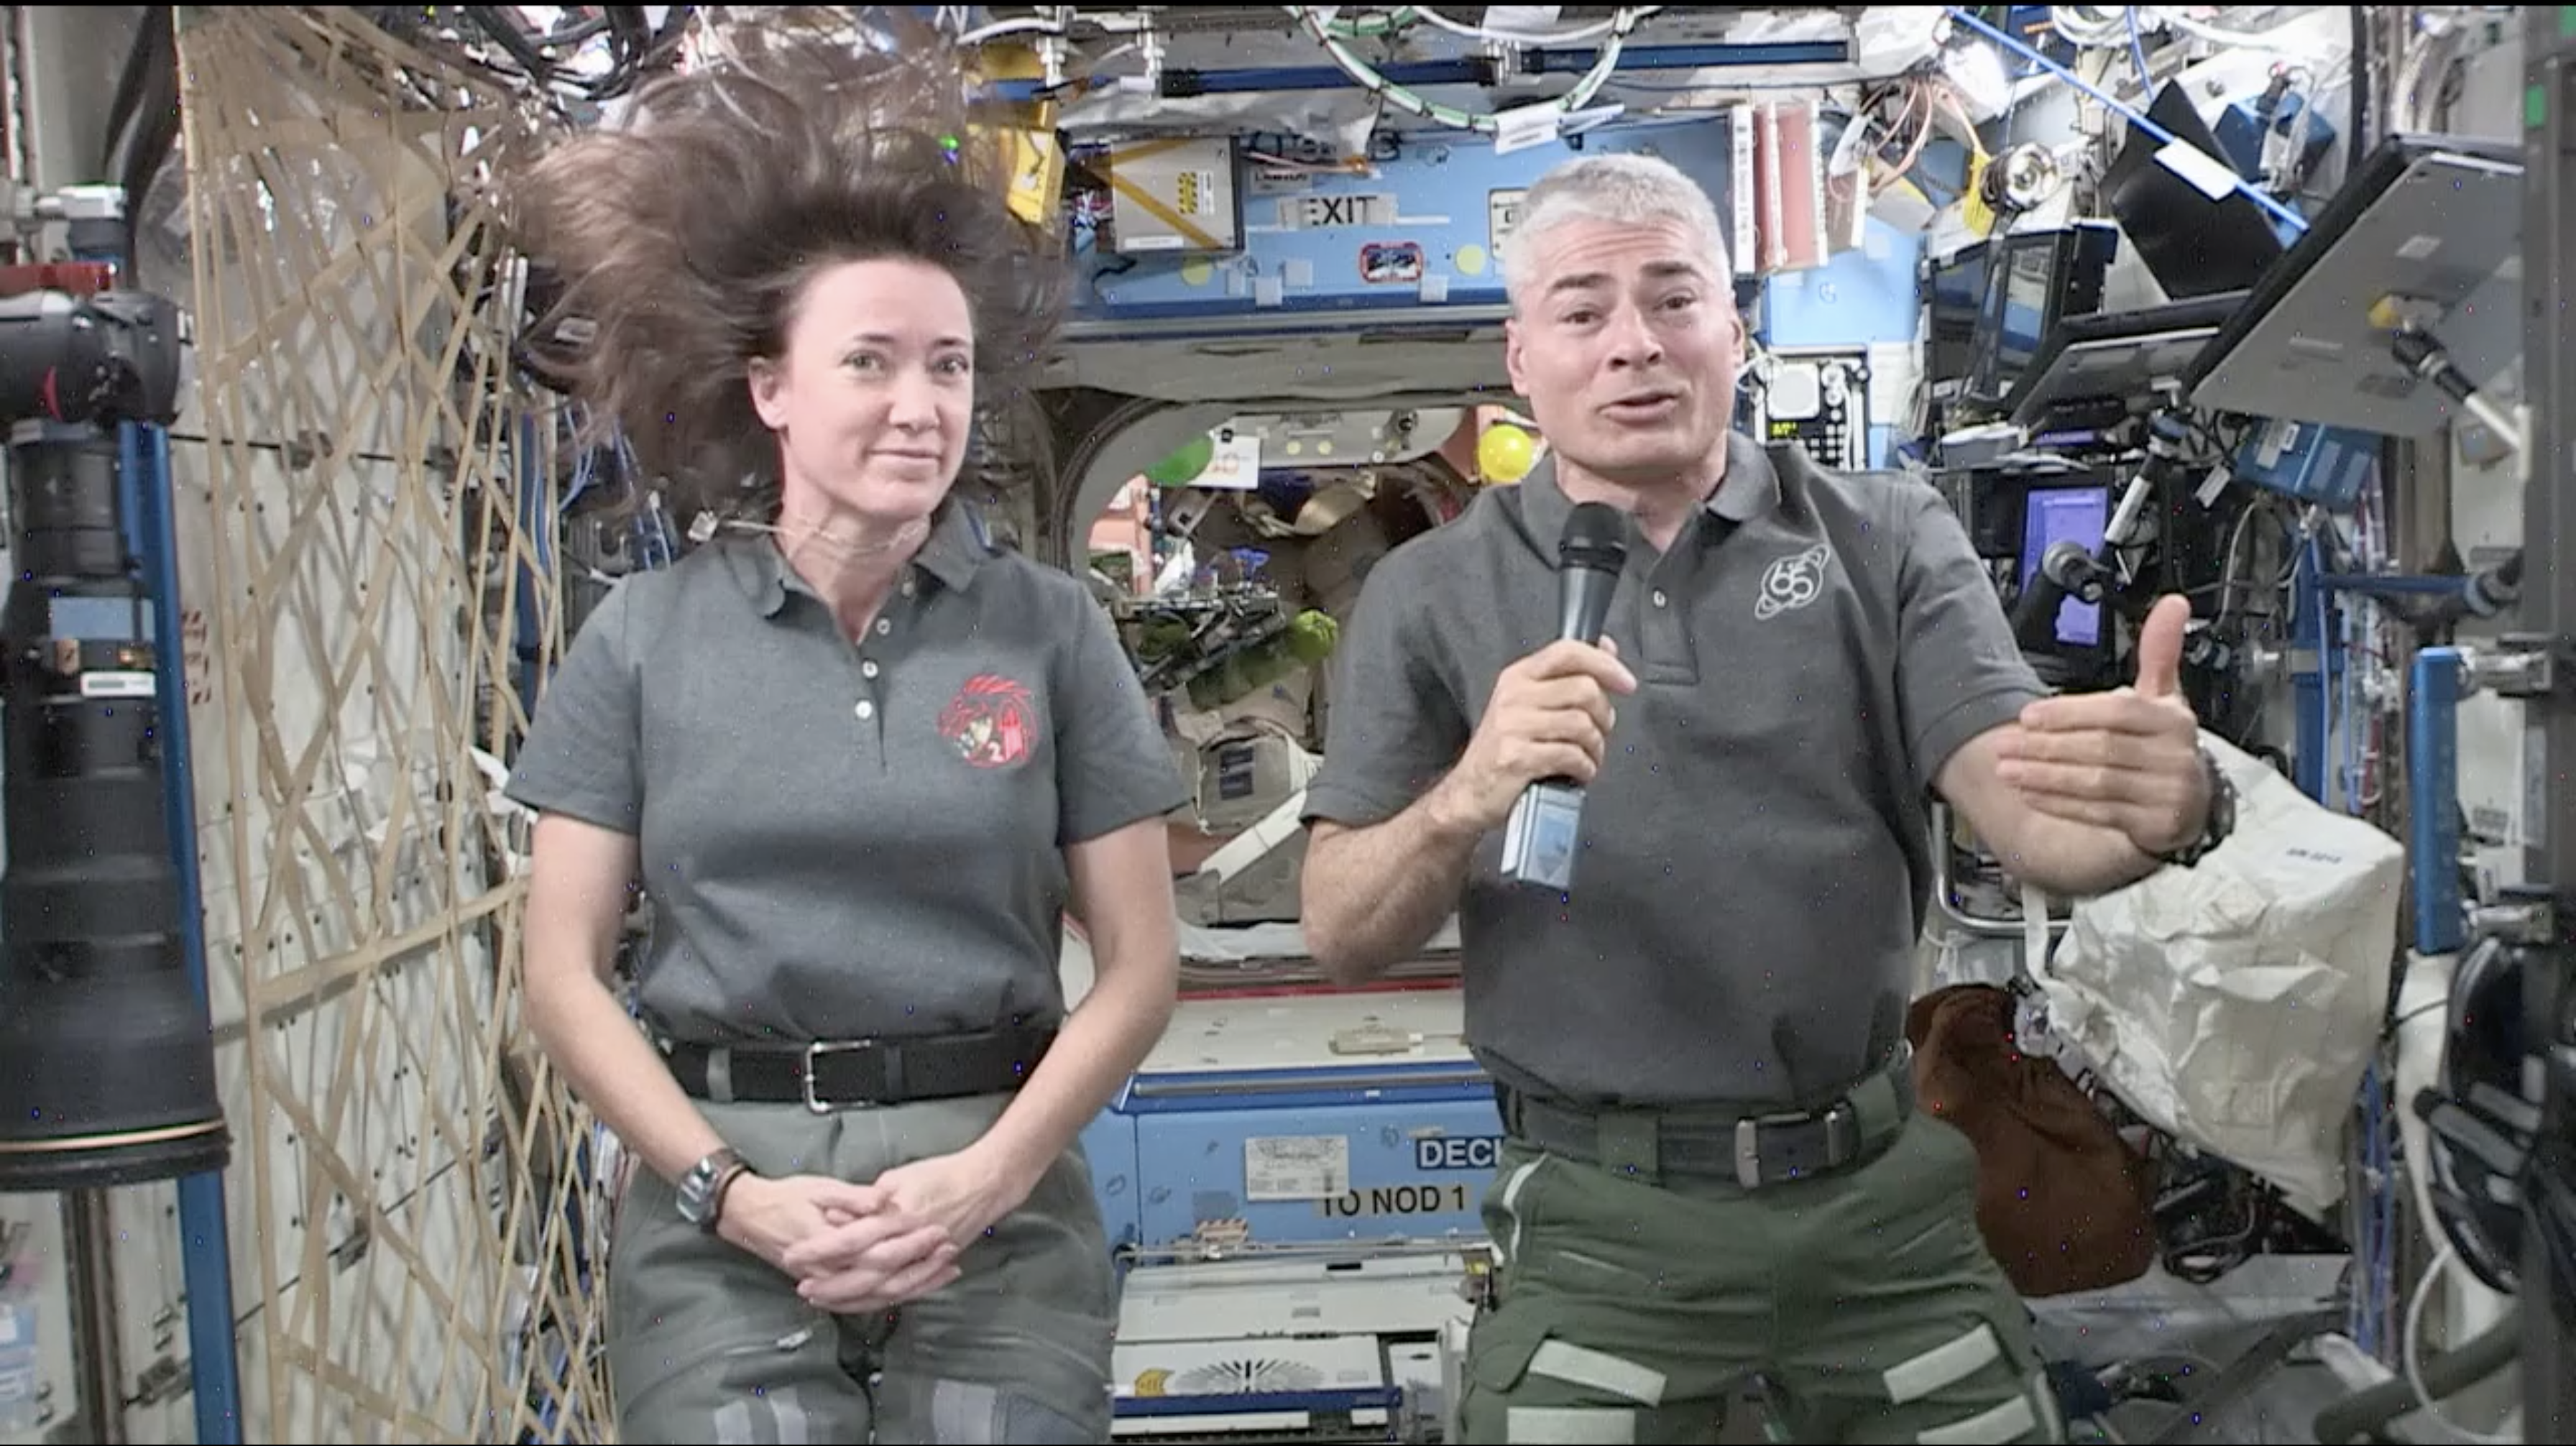 NASA astronauts Megan MacArthur (left) and Mark Vande Hei (right) speak with REACH podcast hosts Wednesday morning aboard the International Space Station on Expedition 65.